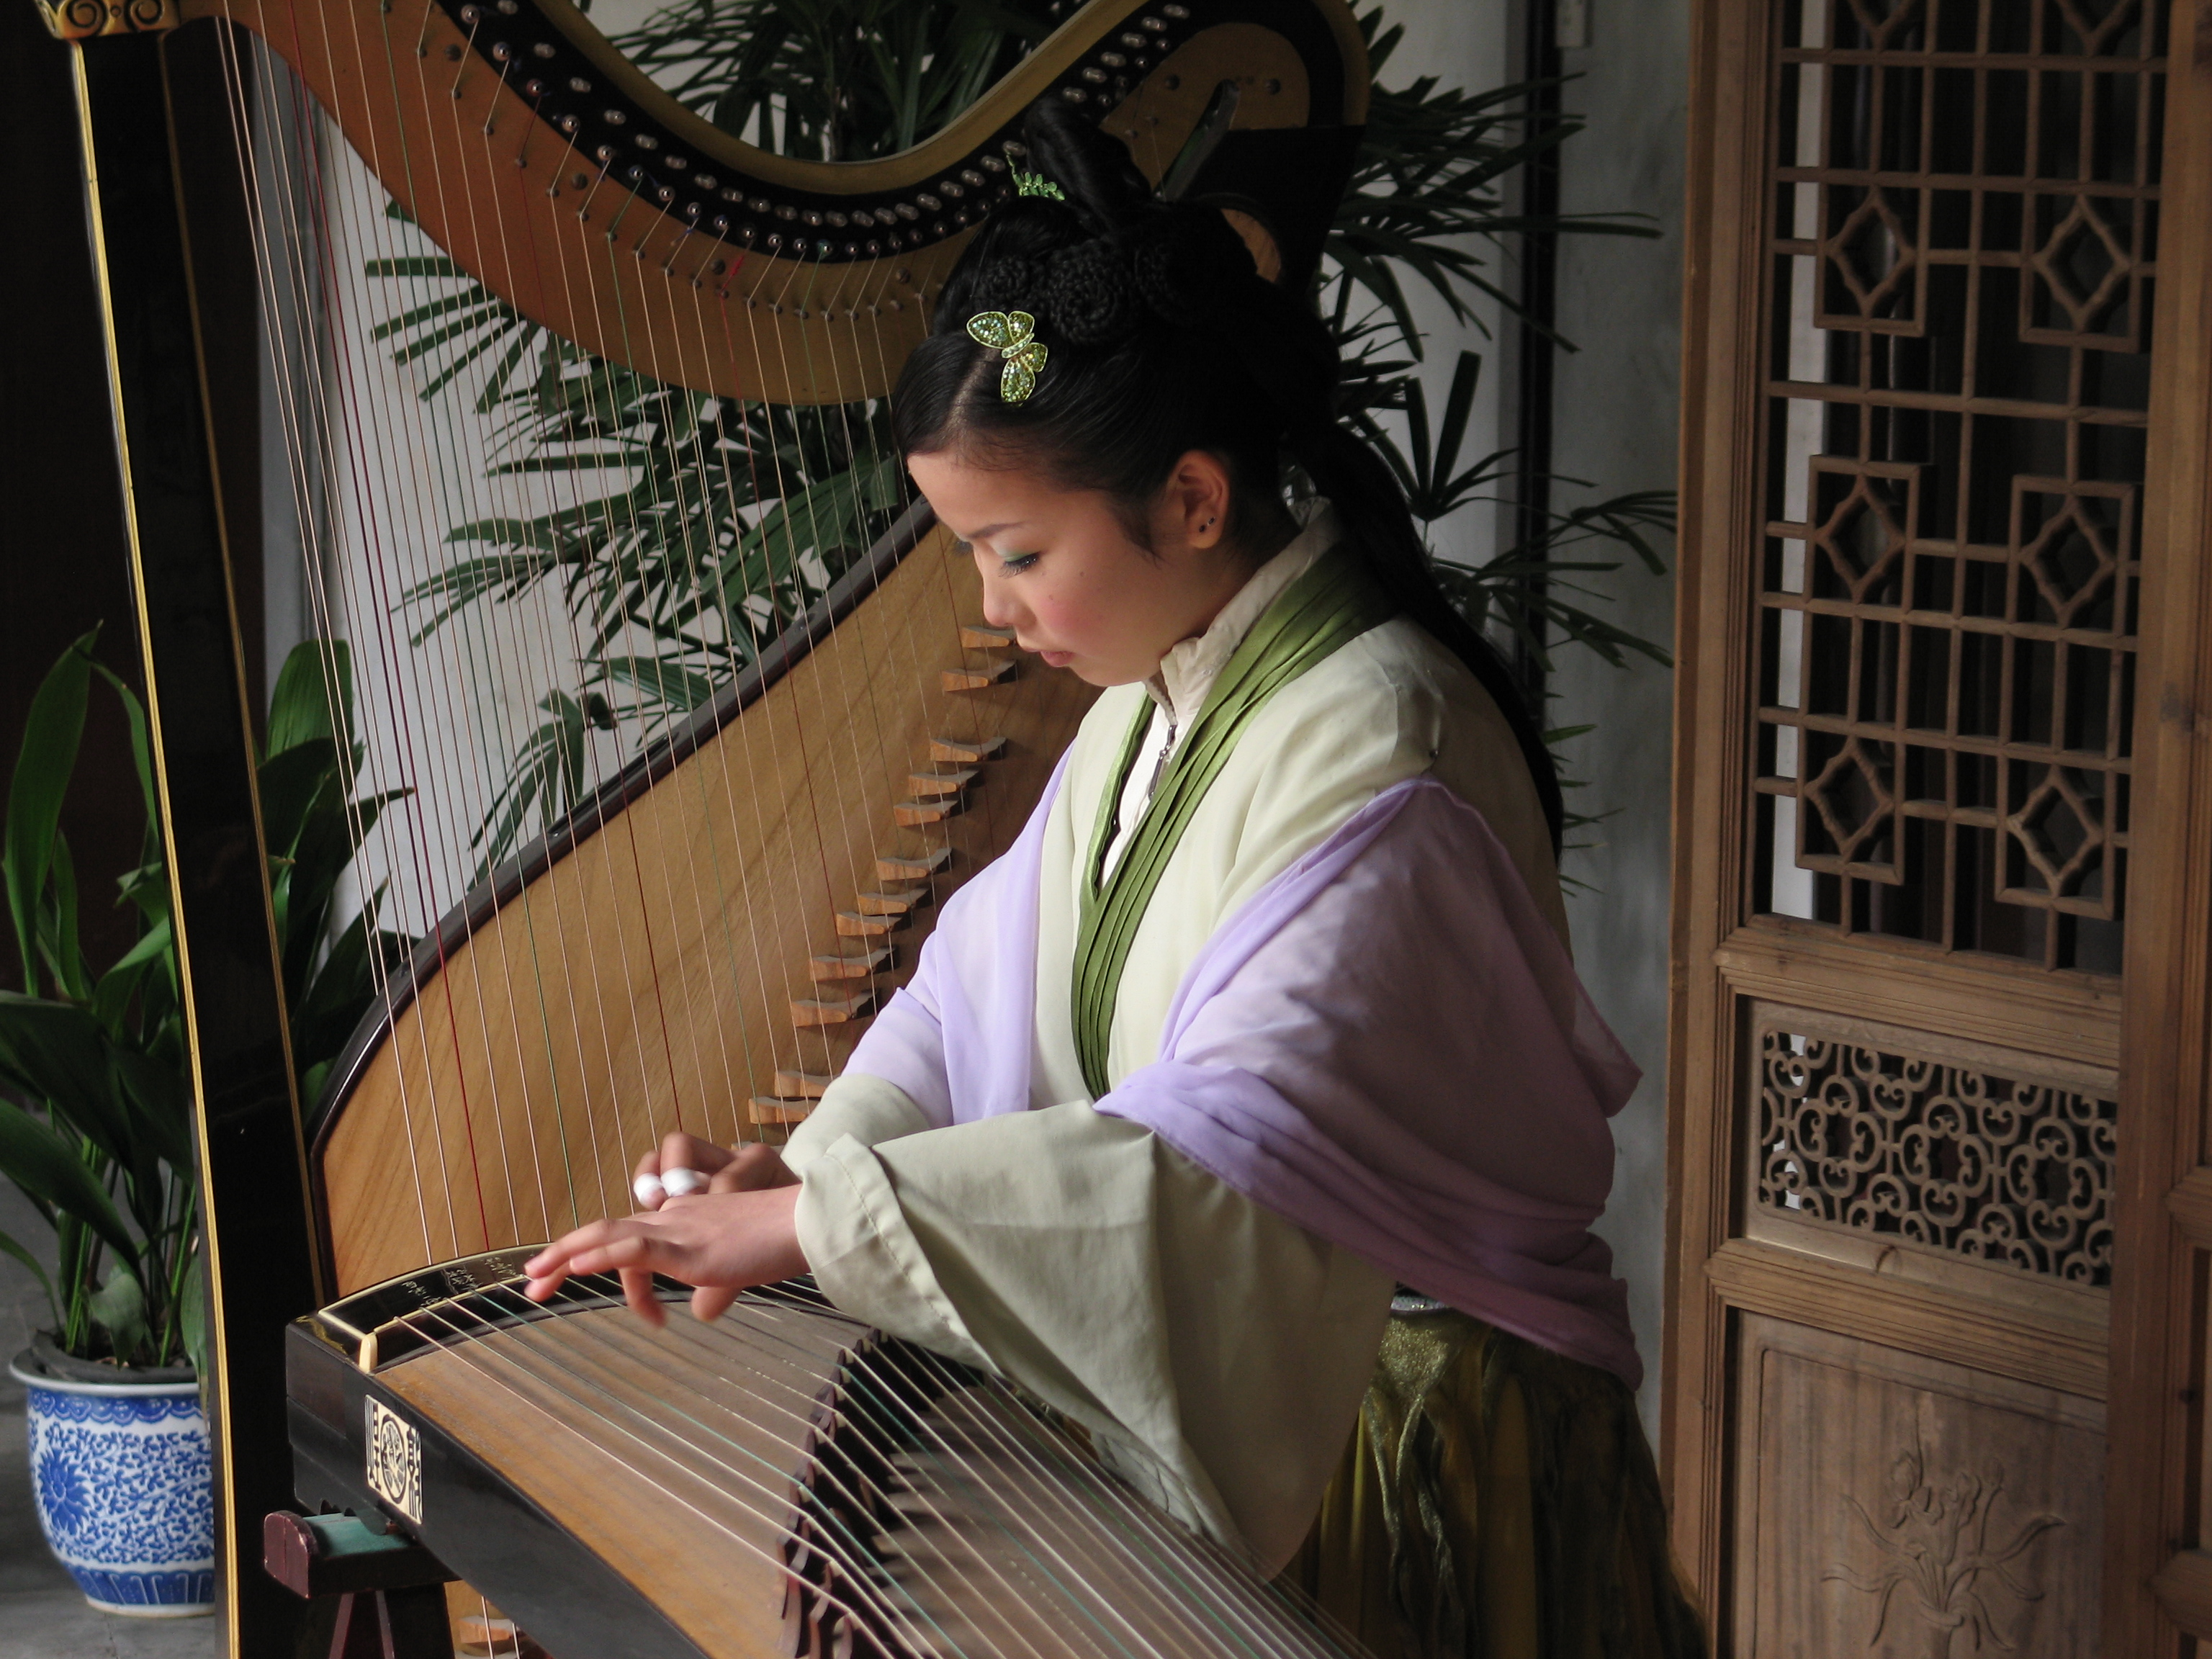 Chinese girl playing instrument by Richard Lund